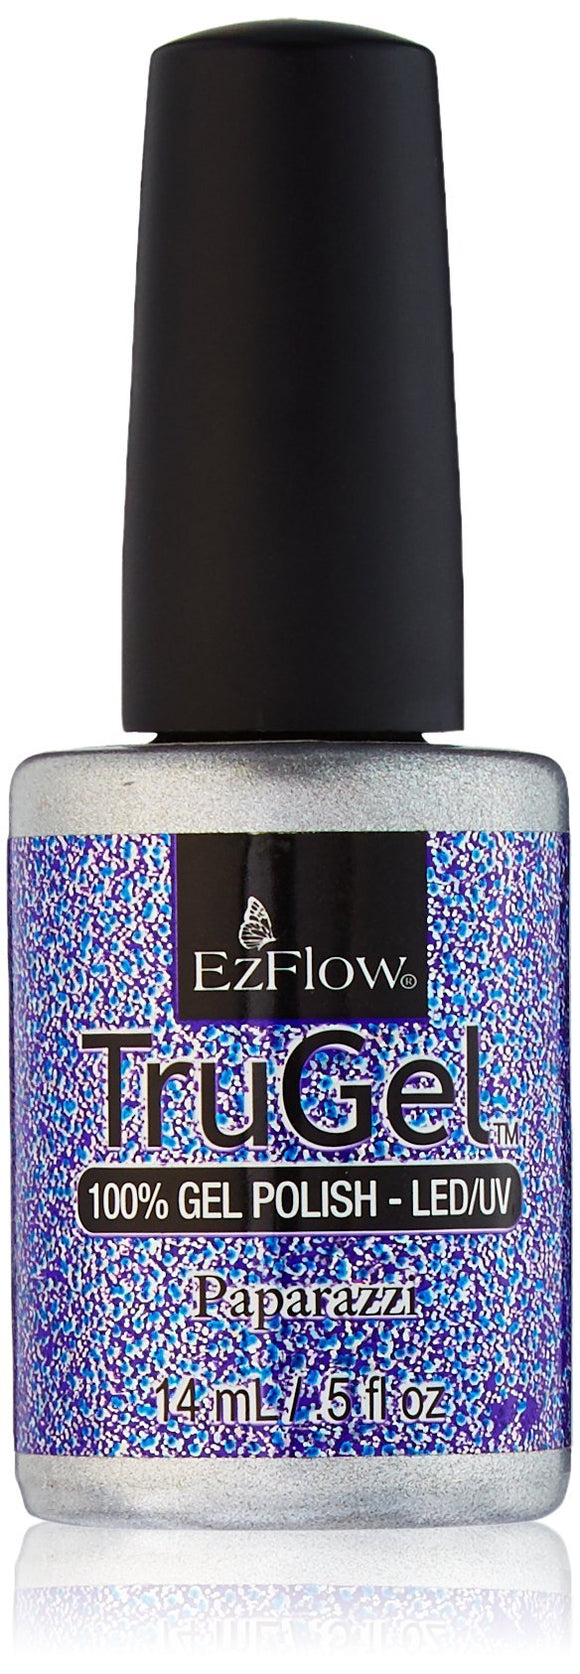 Ez Flow TruGel LED/UV Gel Polish - 14 mL (Paparazzi - EZTG42335)